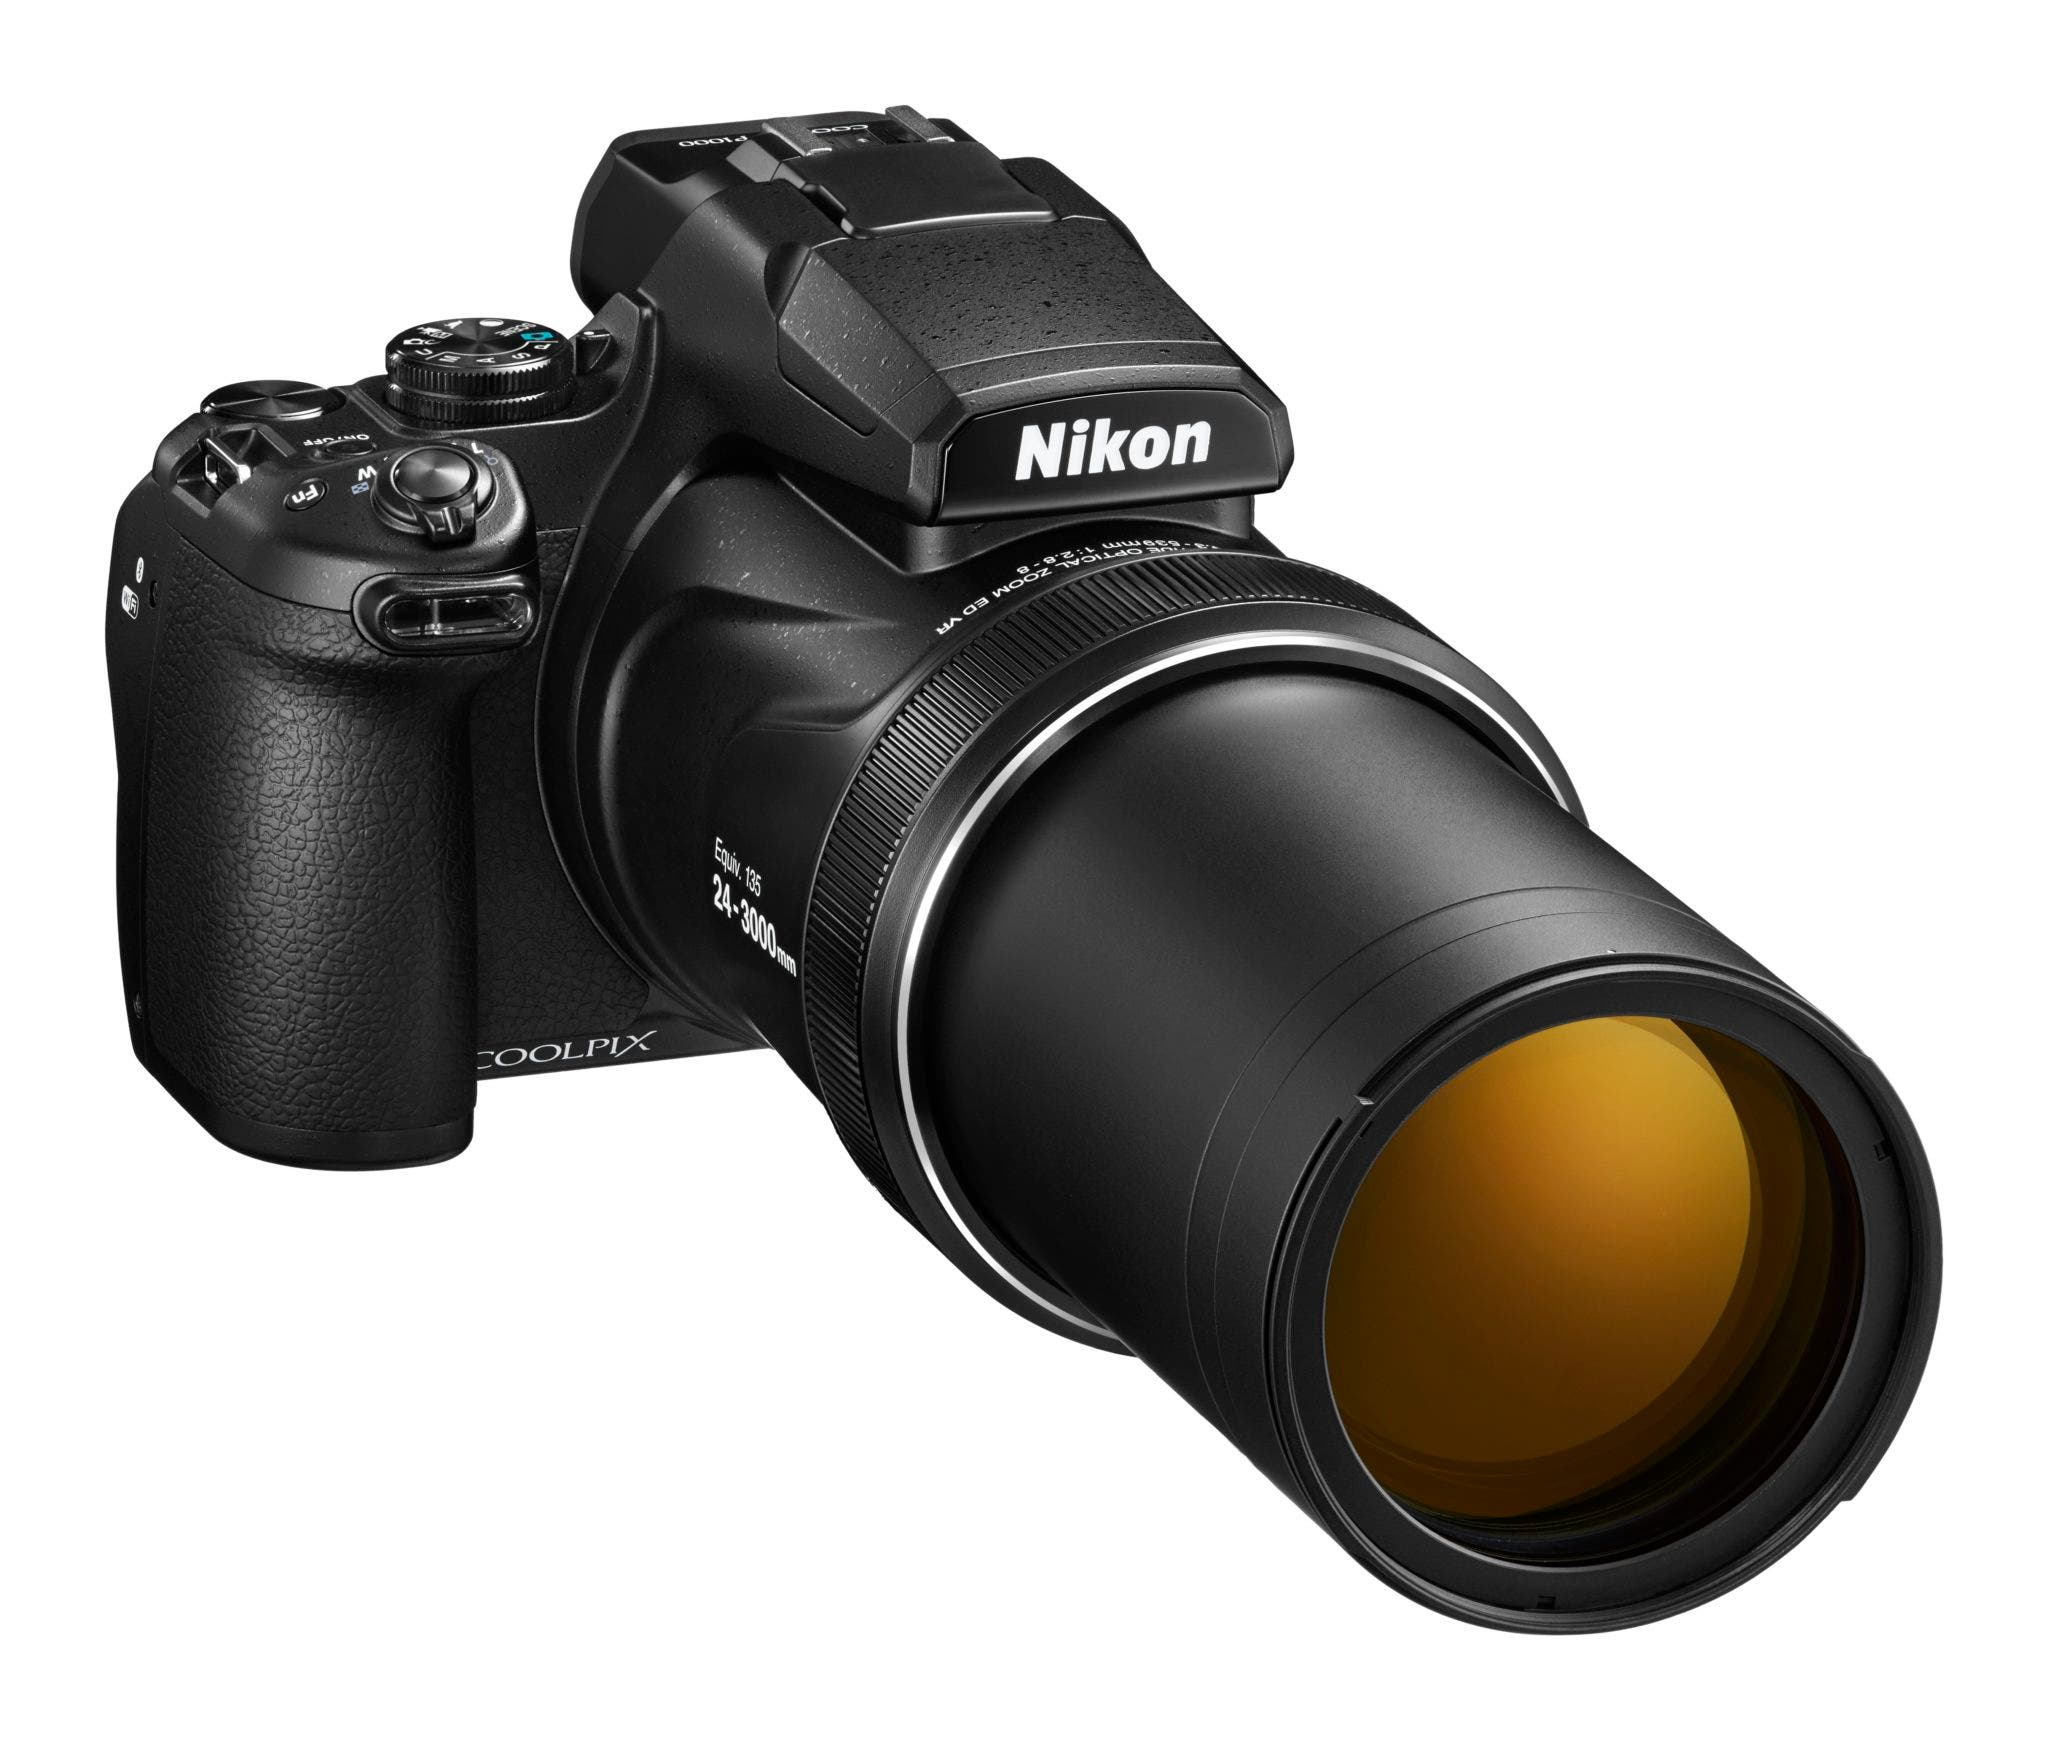 The New Nikon P1000 Has a 125x Optical Zoom with a Laughable 1/2.3 inch Sensor for $999.95